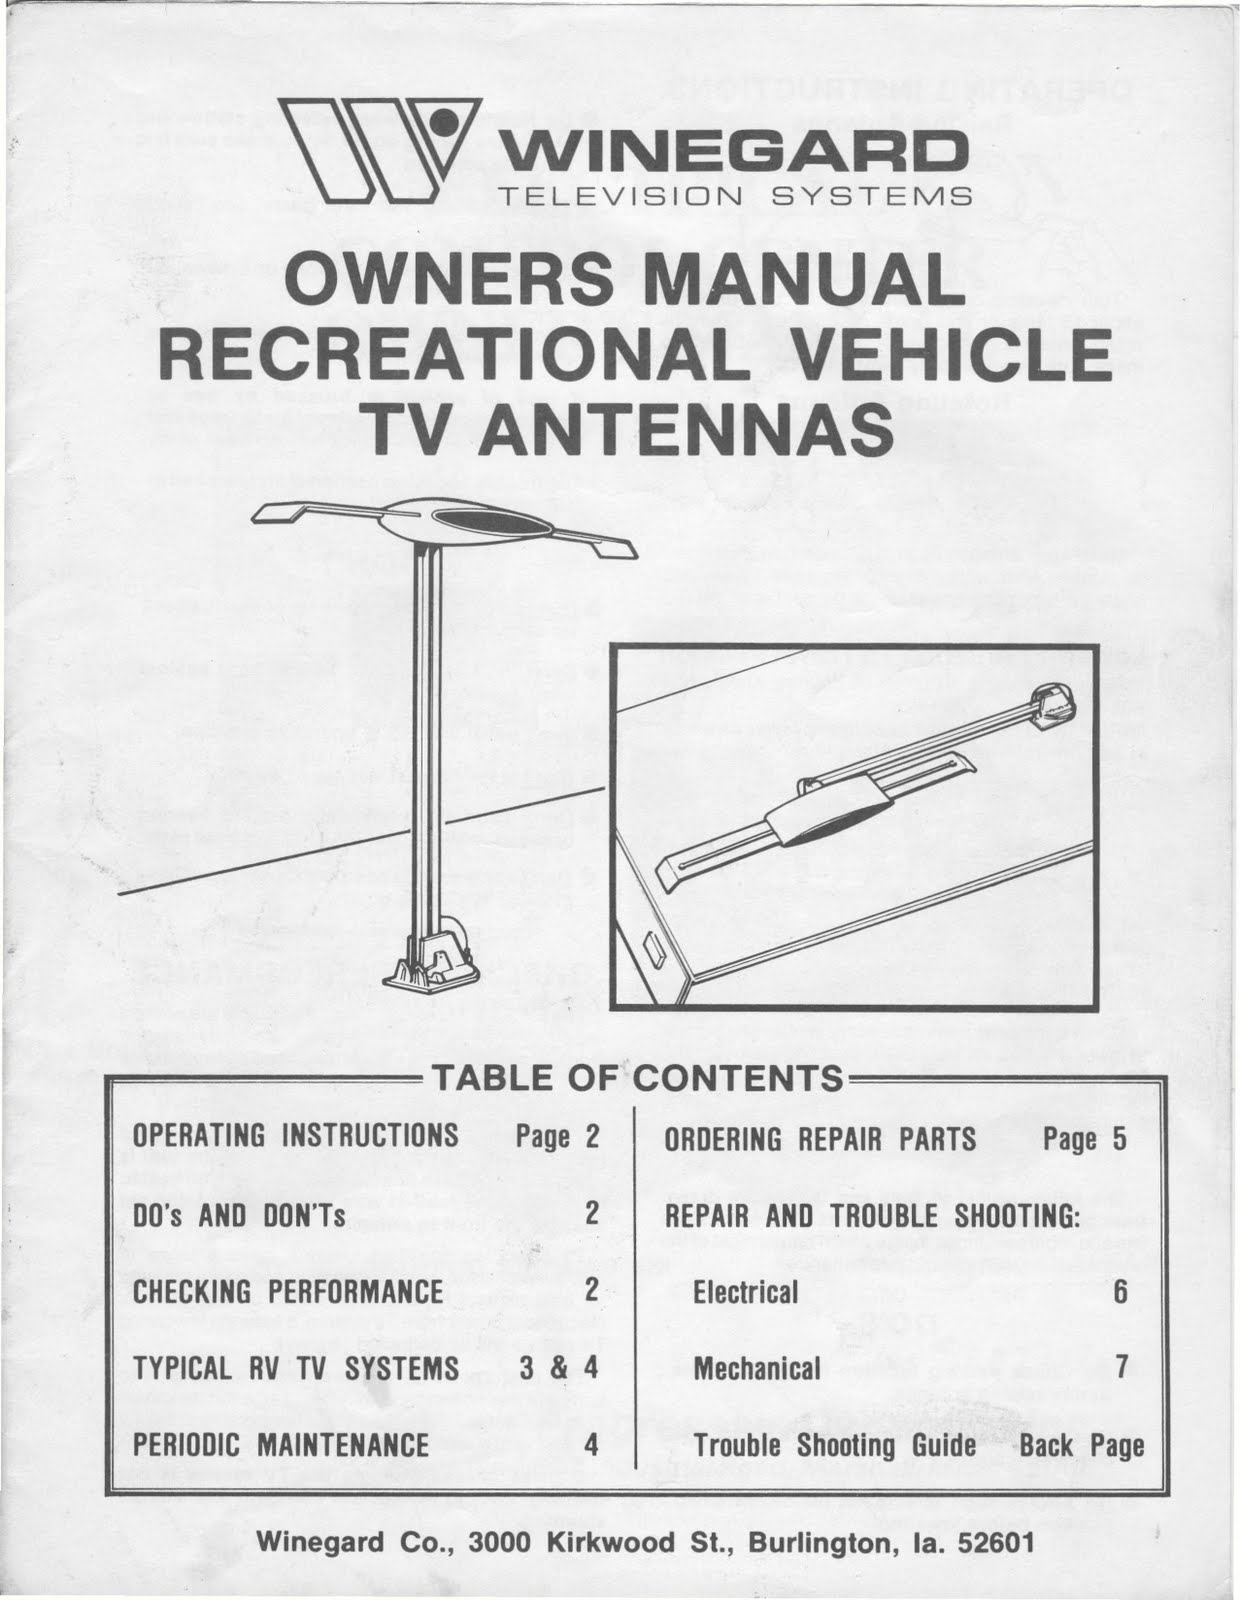 winegard+rv+tv+antenna0001%5B1%5D 001 rv antenna diagram omni directional rv antenna \u2022 wiring diagrams Winegard RV TV Antenna Booster at bakdesigns.co